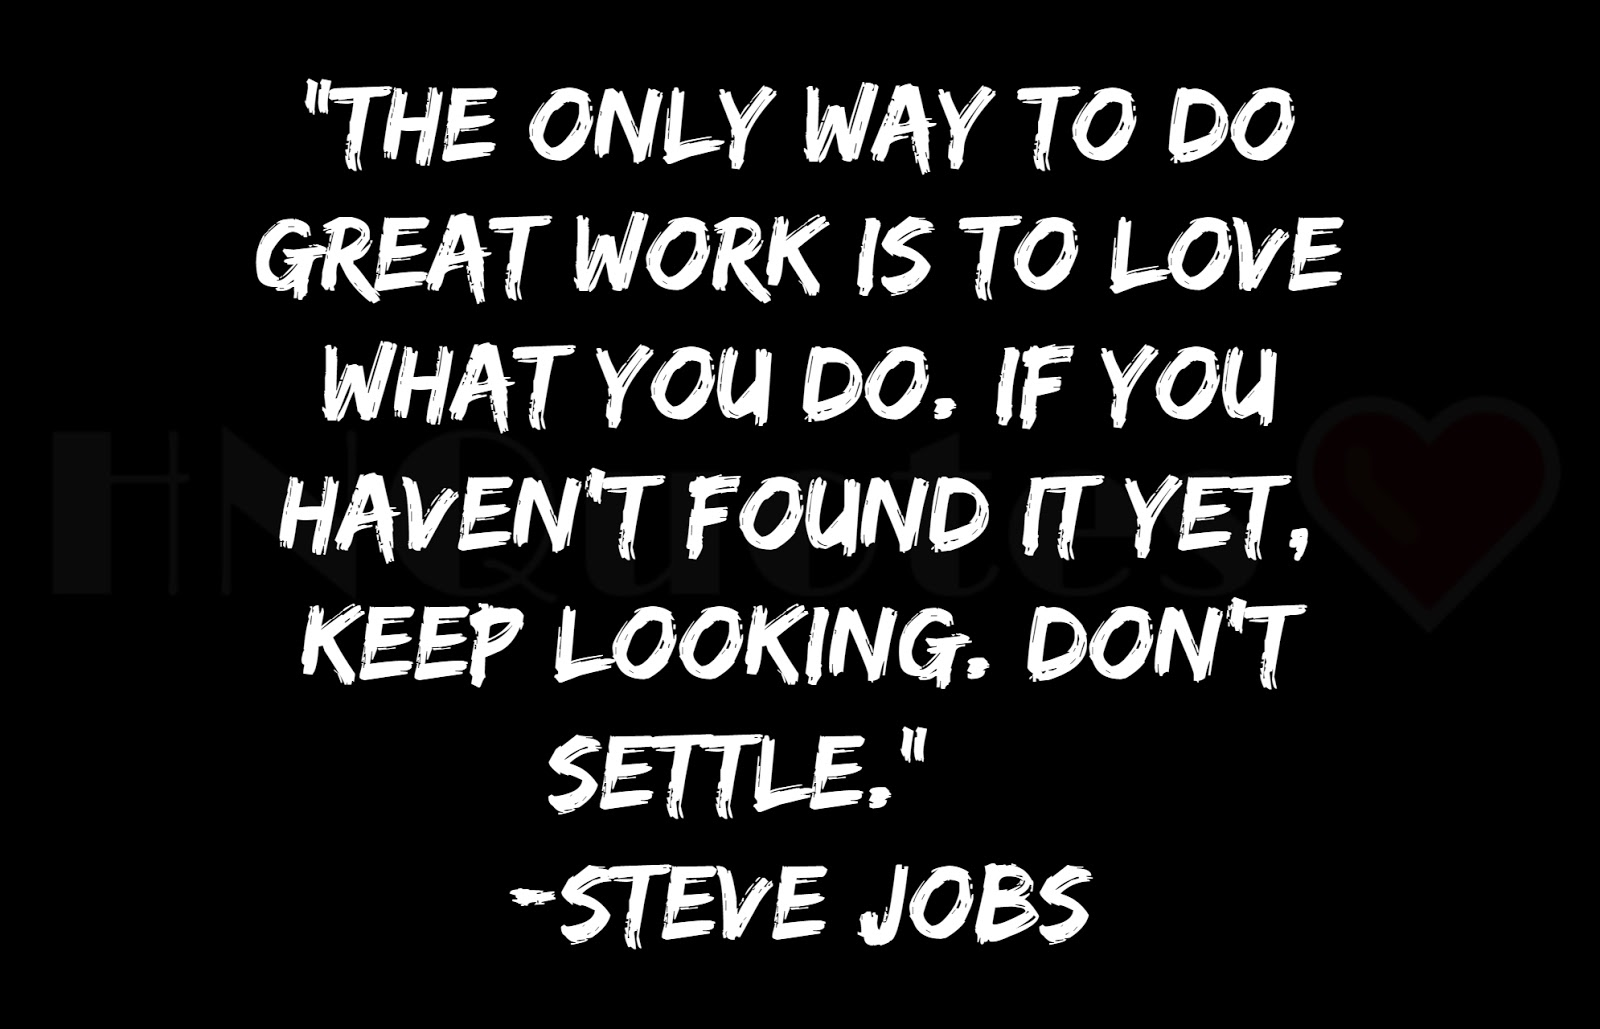 Inspirational-Quotes-on-Life-80-[HNQuotes]